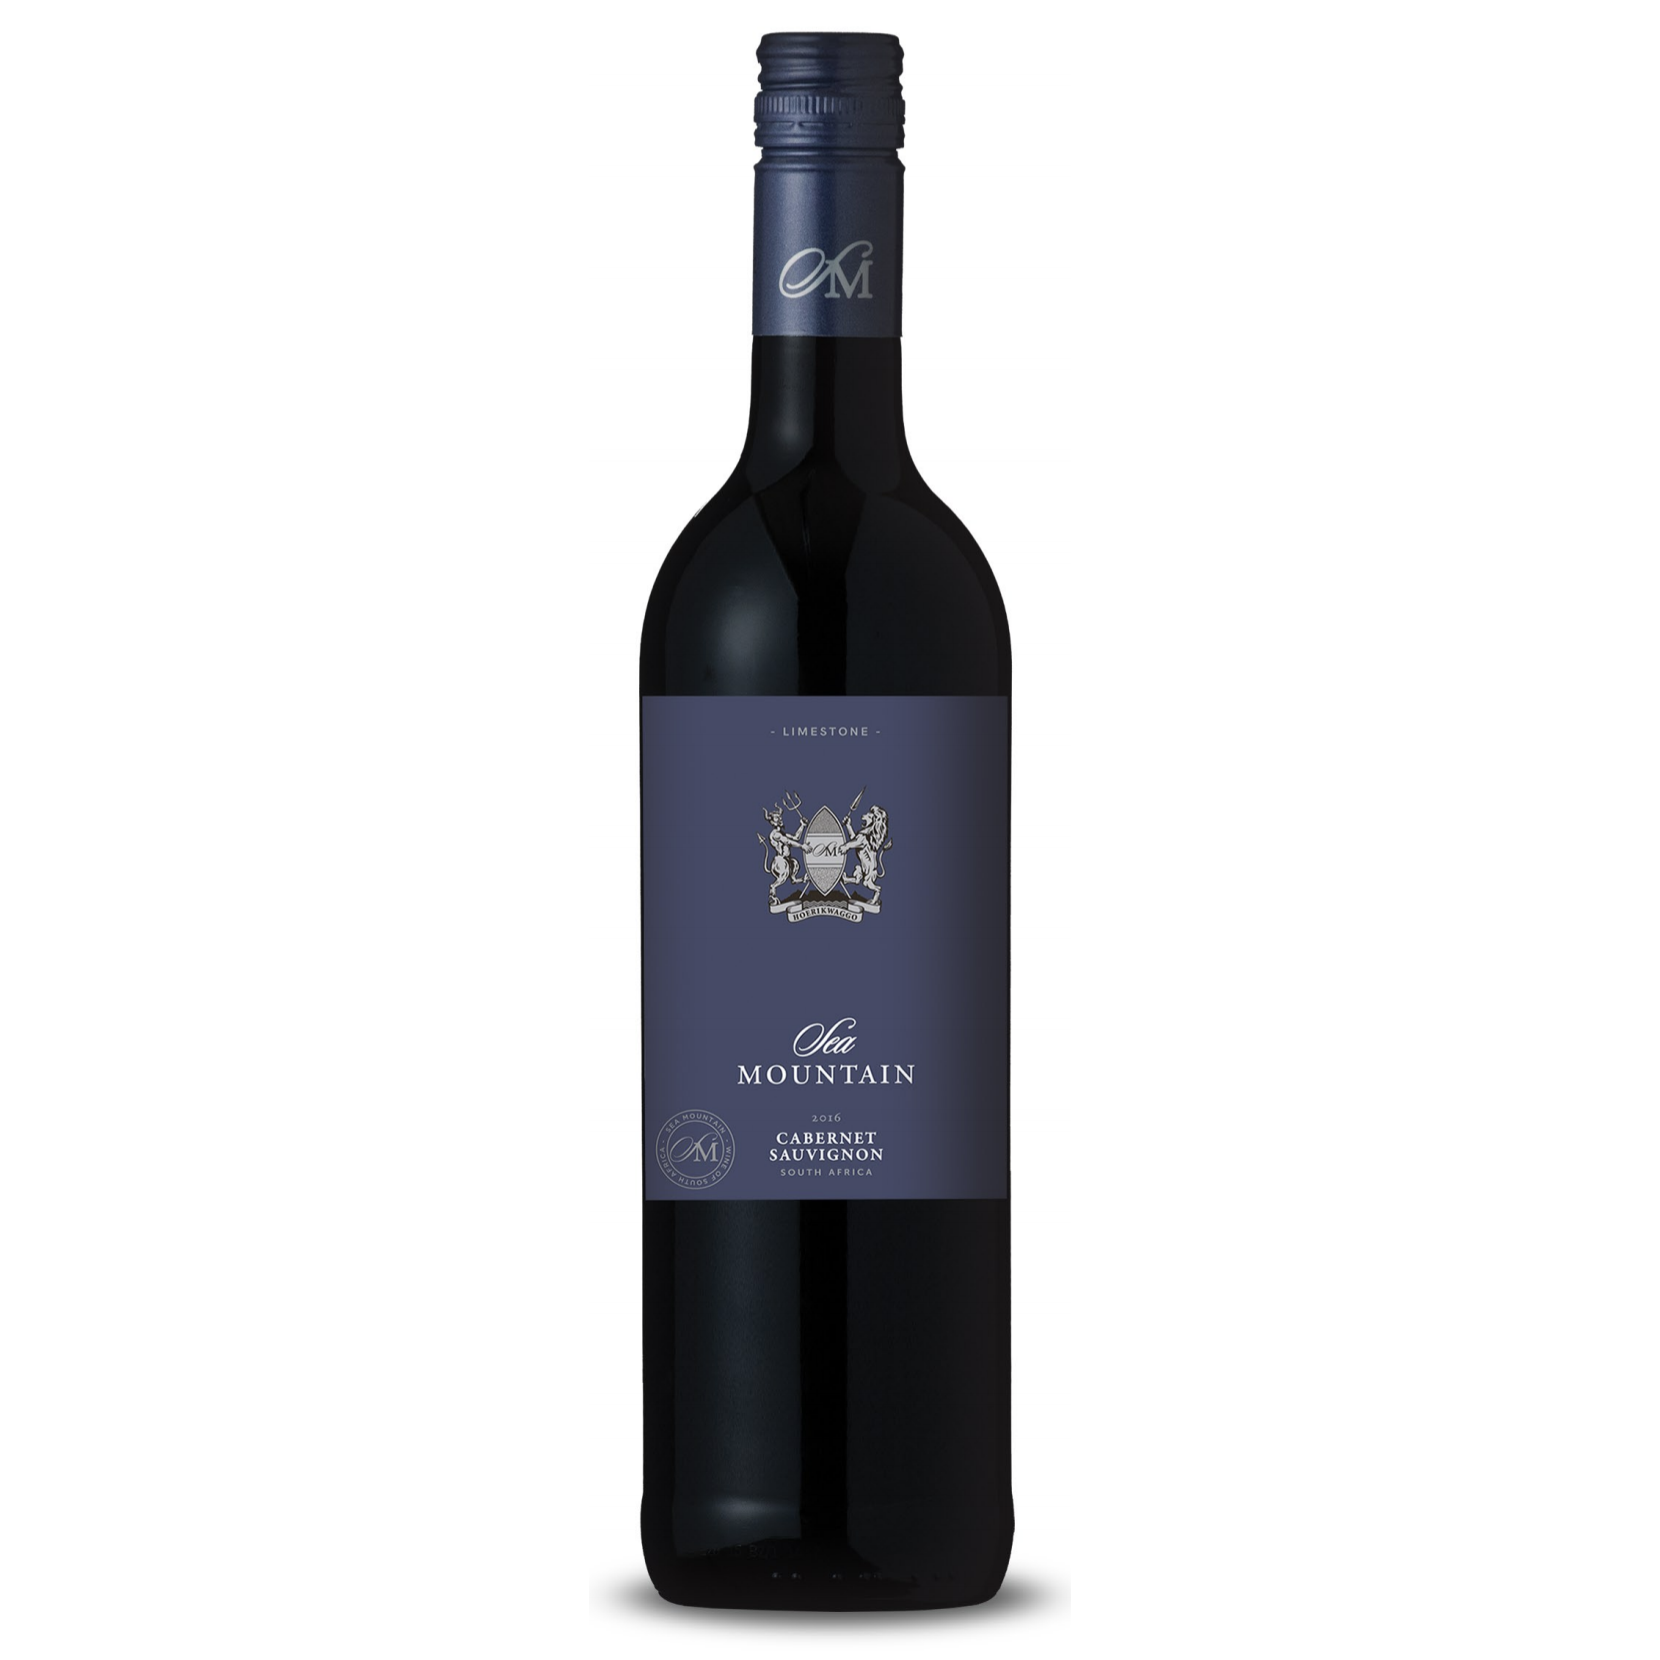 Sea Mountain LIMESTONE - CABERNET SAUVIGNON 2018 (1 x 75cl) - Bodega Movil